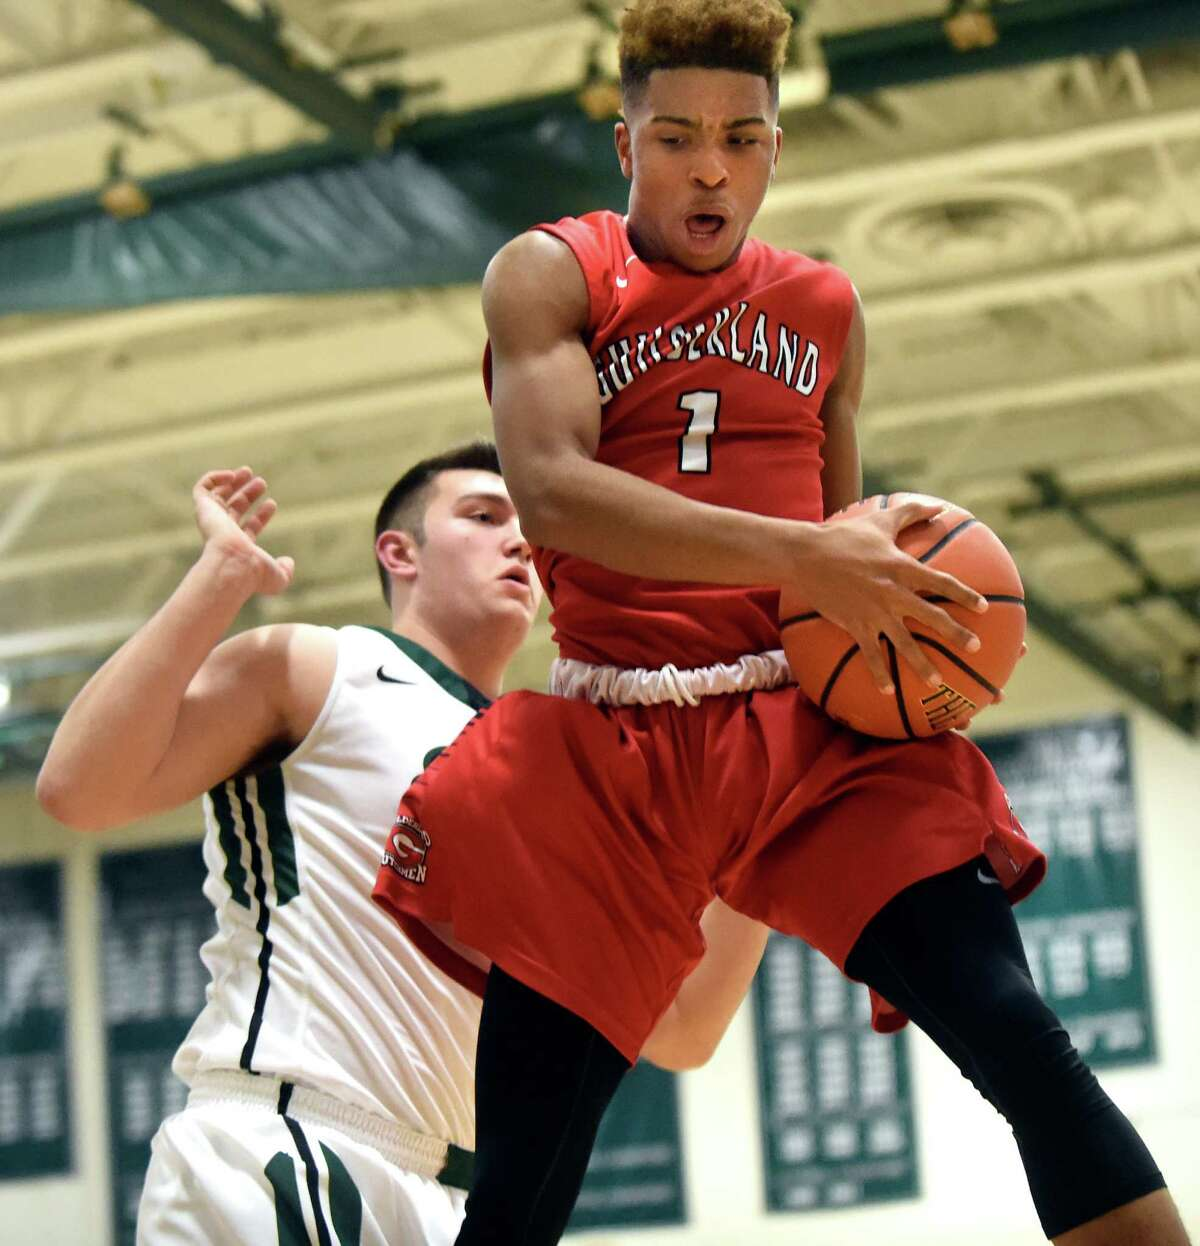 Guilderland's Michael Wine, right, wins the rebound over Shen's Mike Pizziketti during their basketball game on Friday, Dec. 11, 2015, at Shenendehowa High in Clifton Park, N.Y. (Cindy Schultz / Times Union)